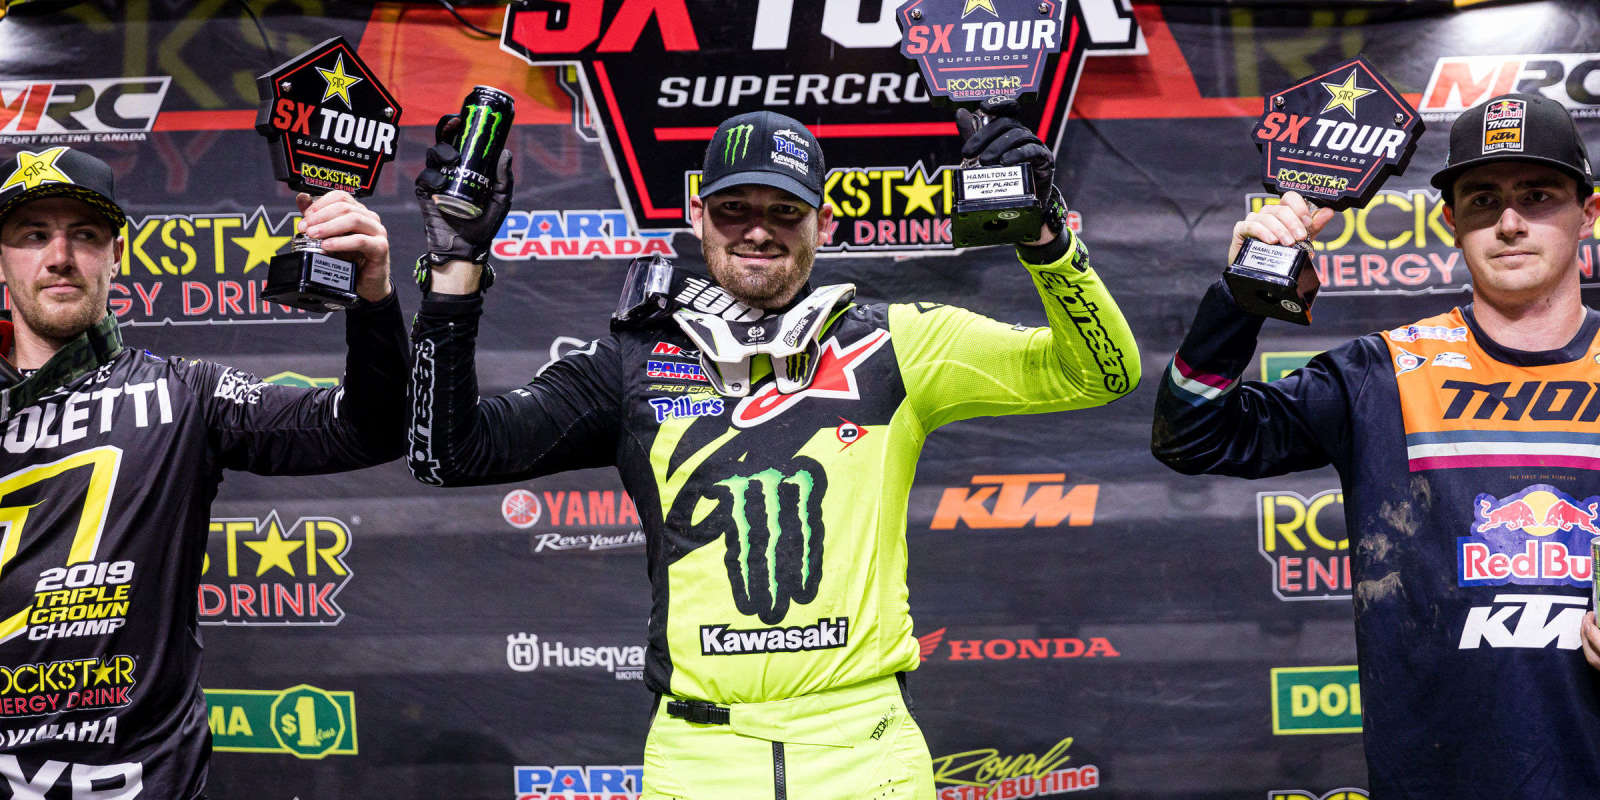 Action and podium shots from the Canadian Supercross finals in Hamiltopn, Ontario, Canada.